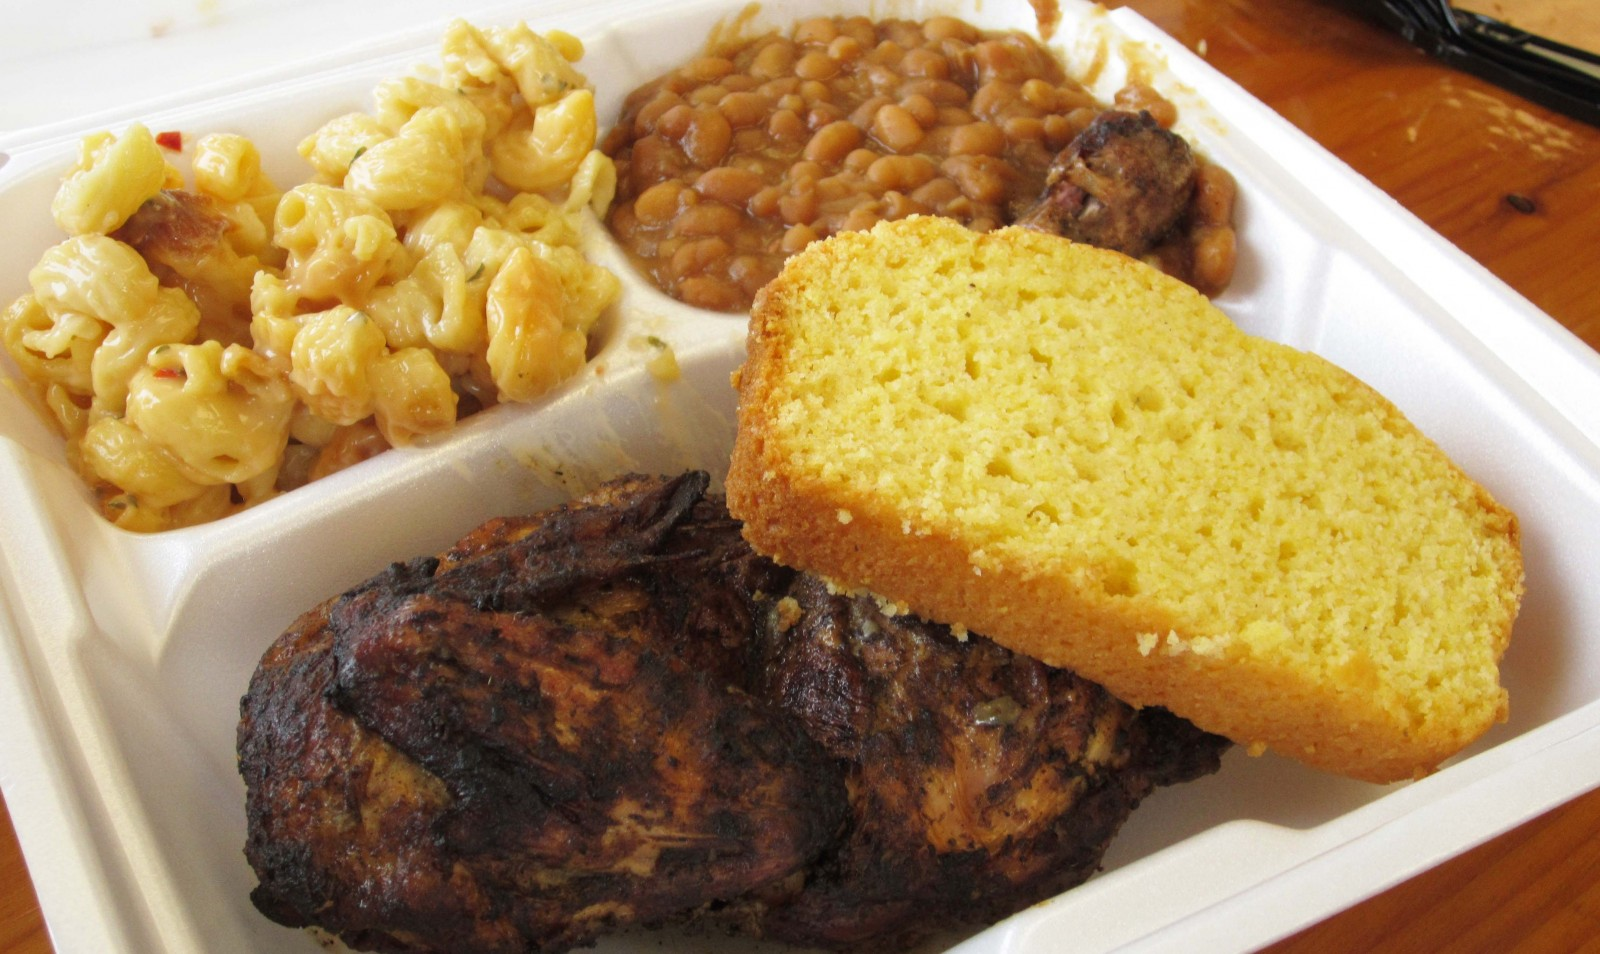 Chiavetta's half chicken with beans, really good mac and cheese and stellar cornbread, which was a sweeter version.